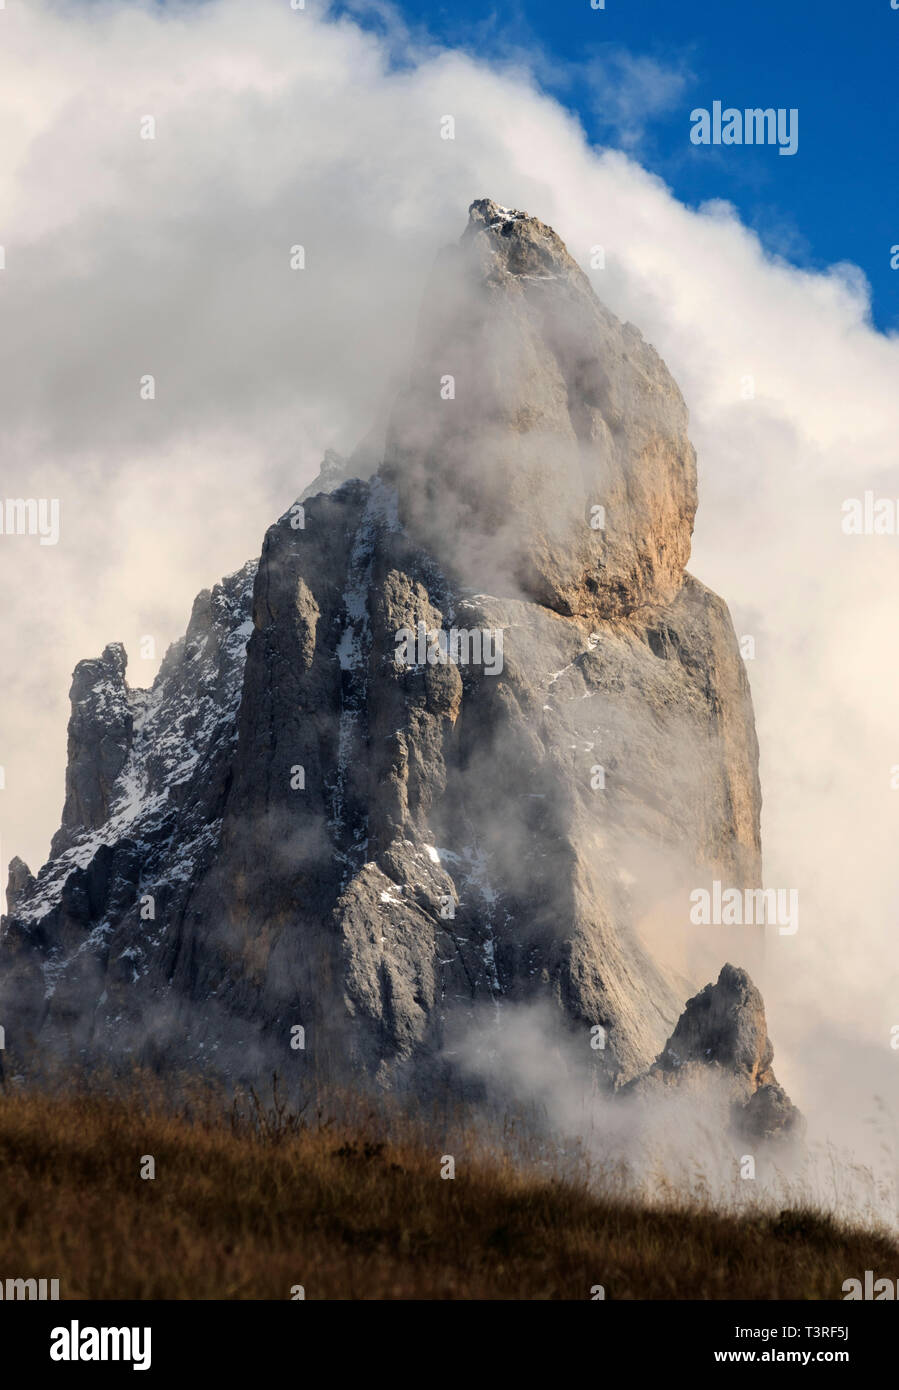 The Cimon (literally, big summit) della Pala is the most famous peak of the Pale di San Martino group in the Dolomites, Italy. For its particular shap - Stock Image